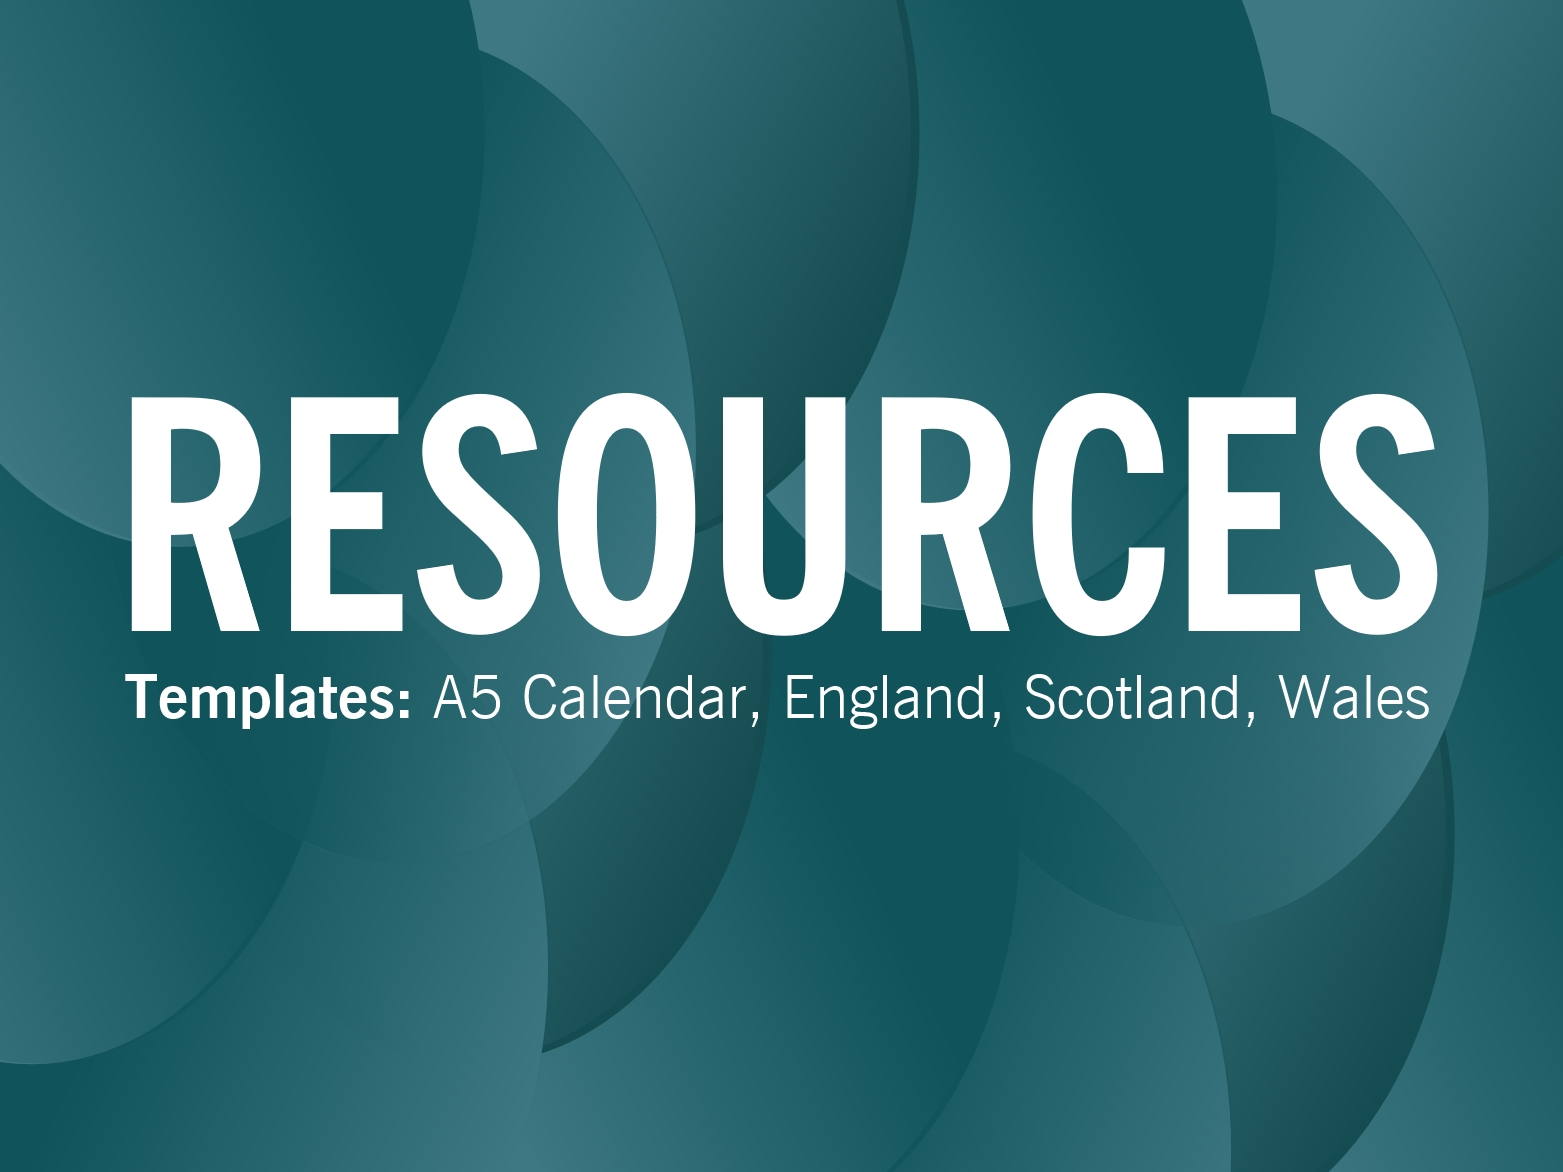 RESOURCES: 2018 calendar templates